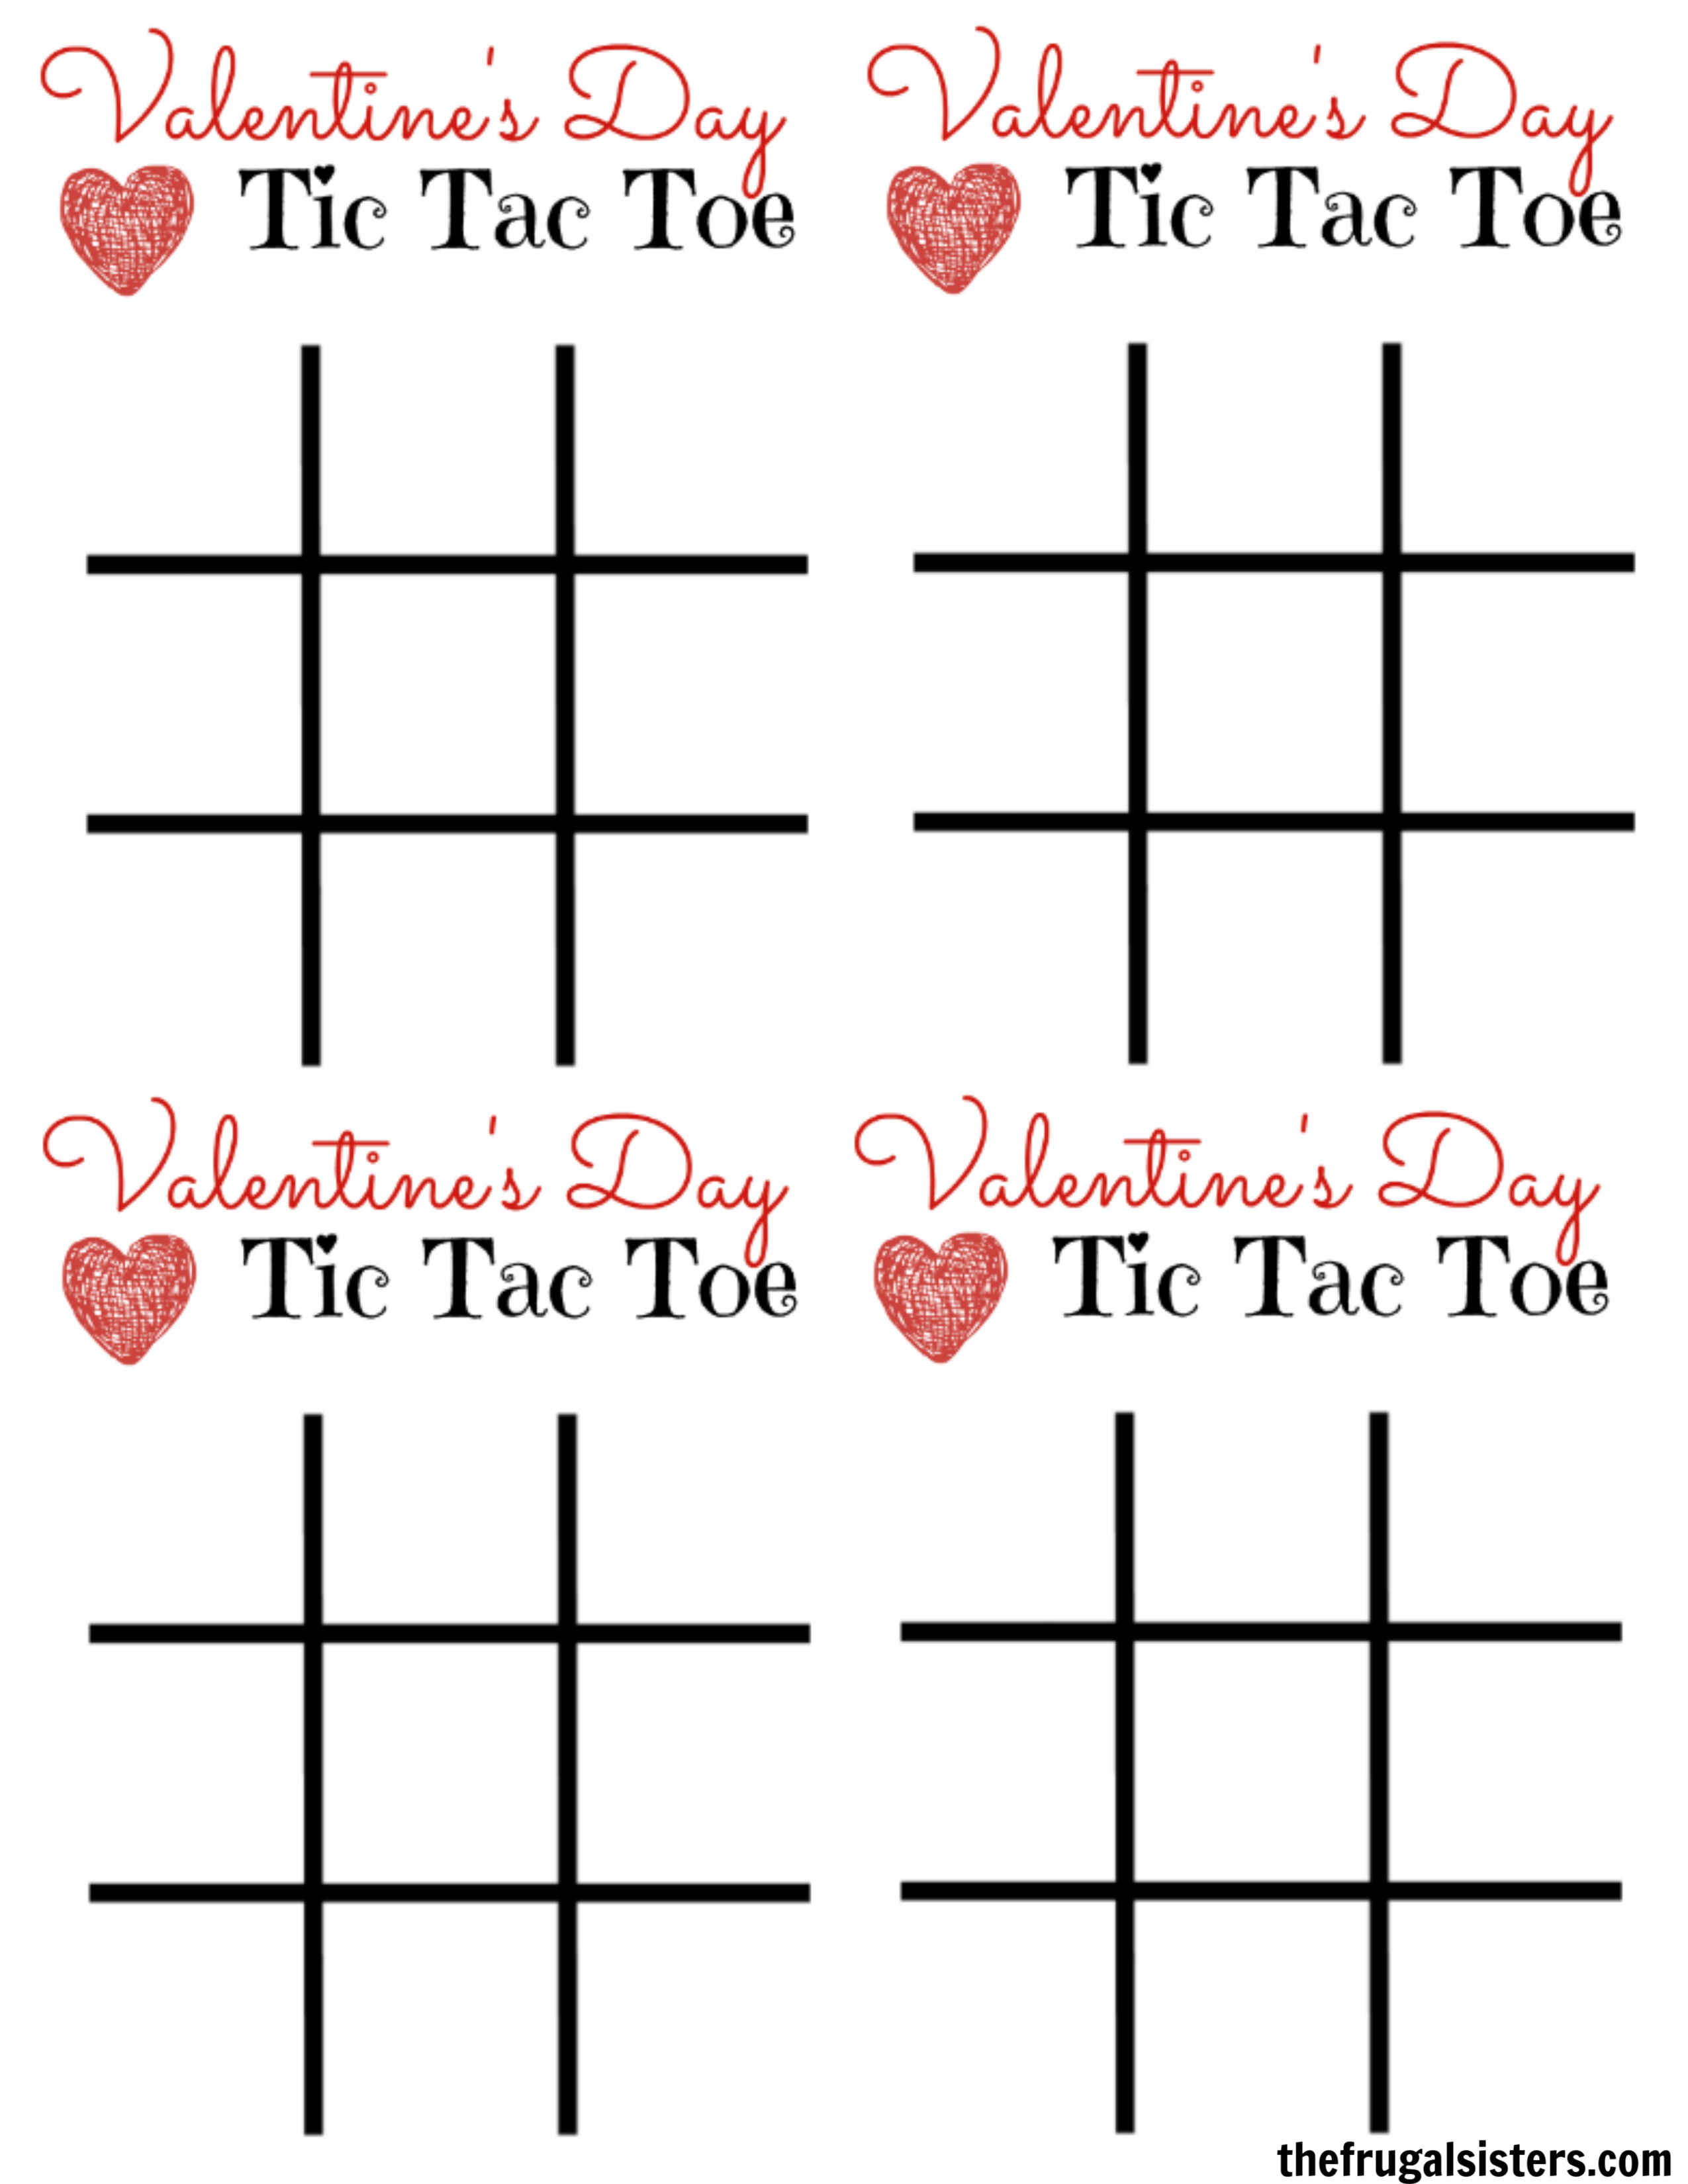 photograph about Tic Tac Toe Valentine Printable called Tic Tac Toe Valentines Working day Card ~ The Frugal Sisters